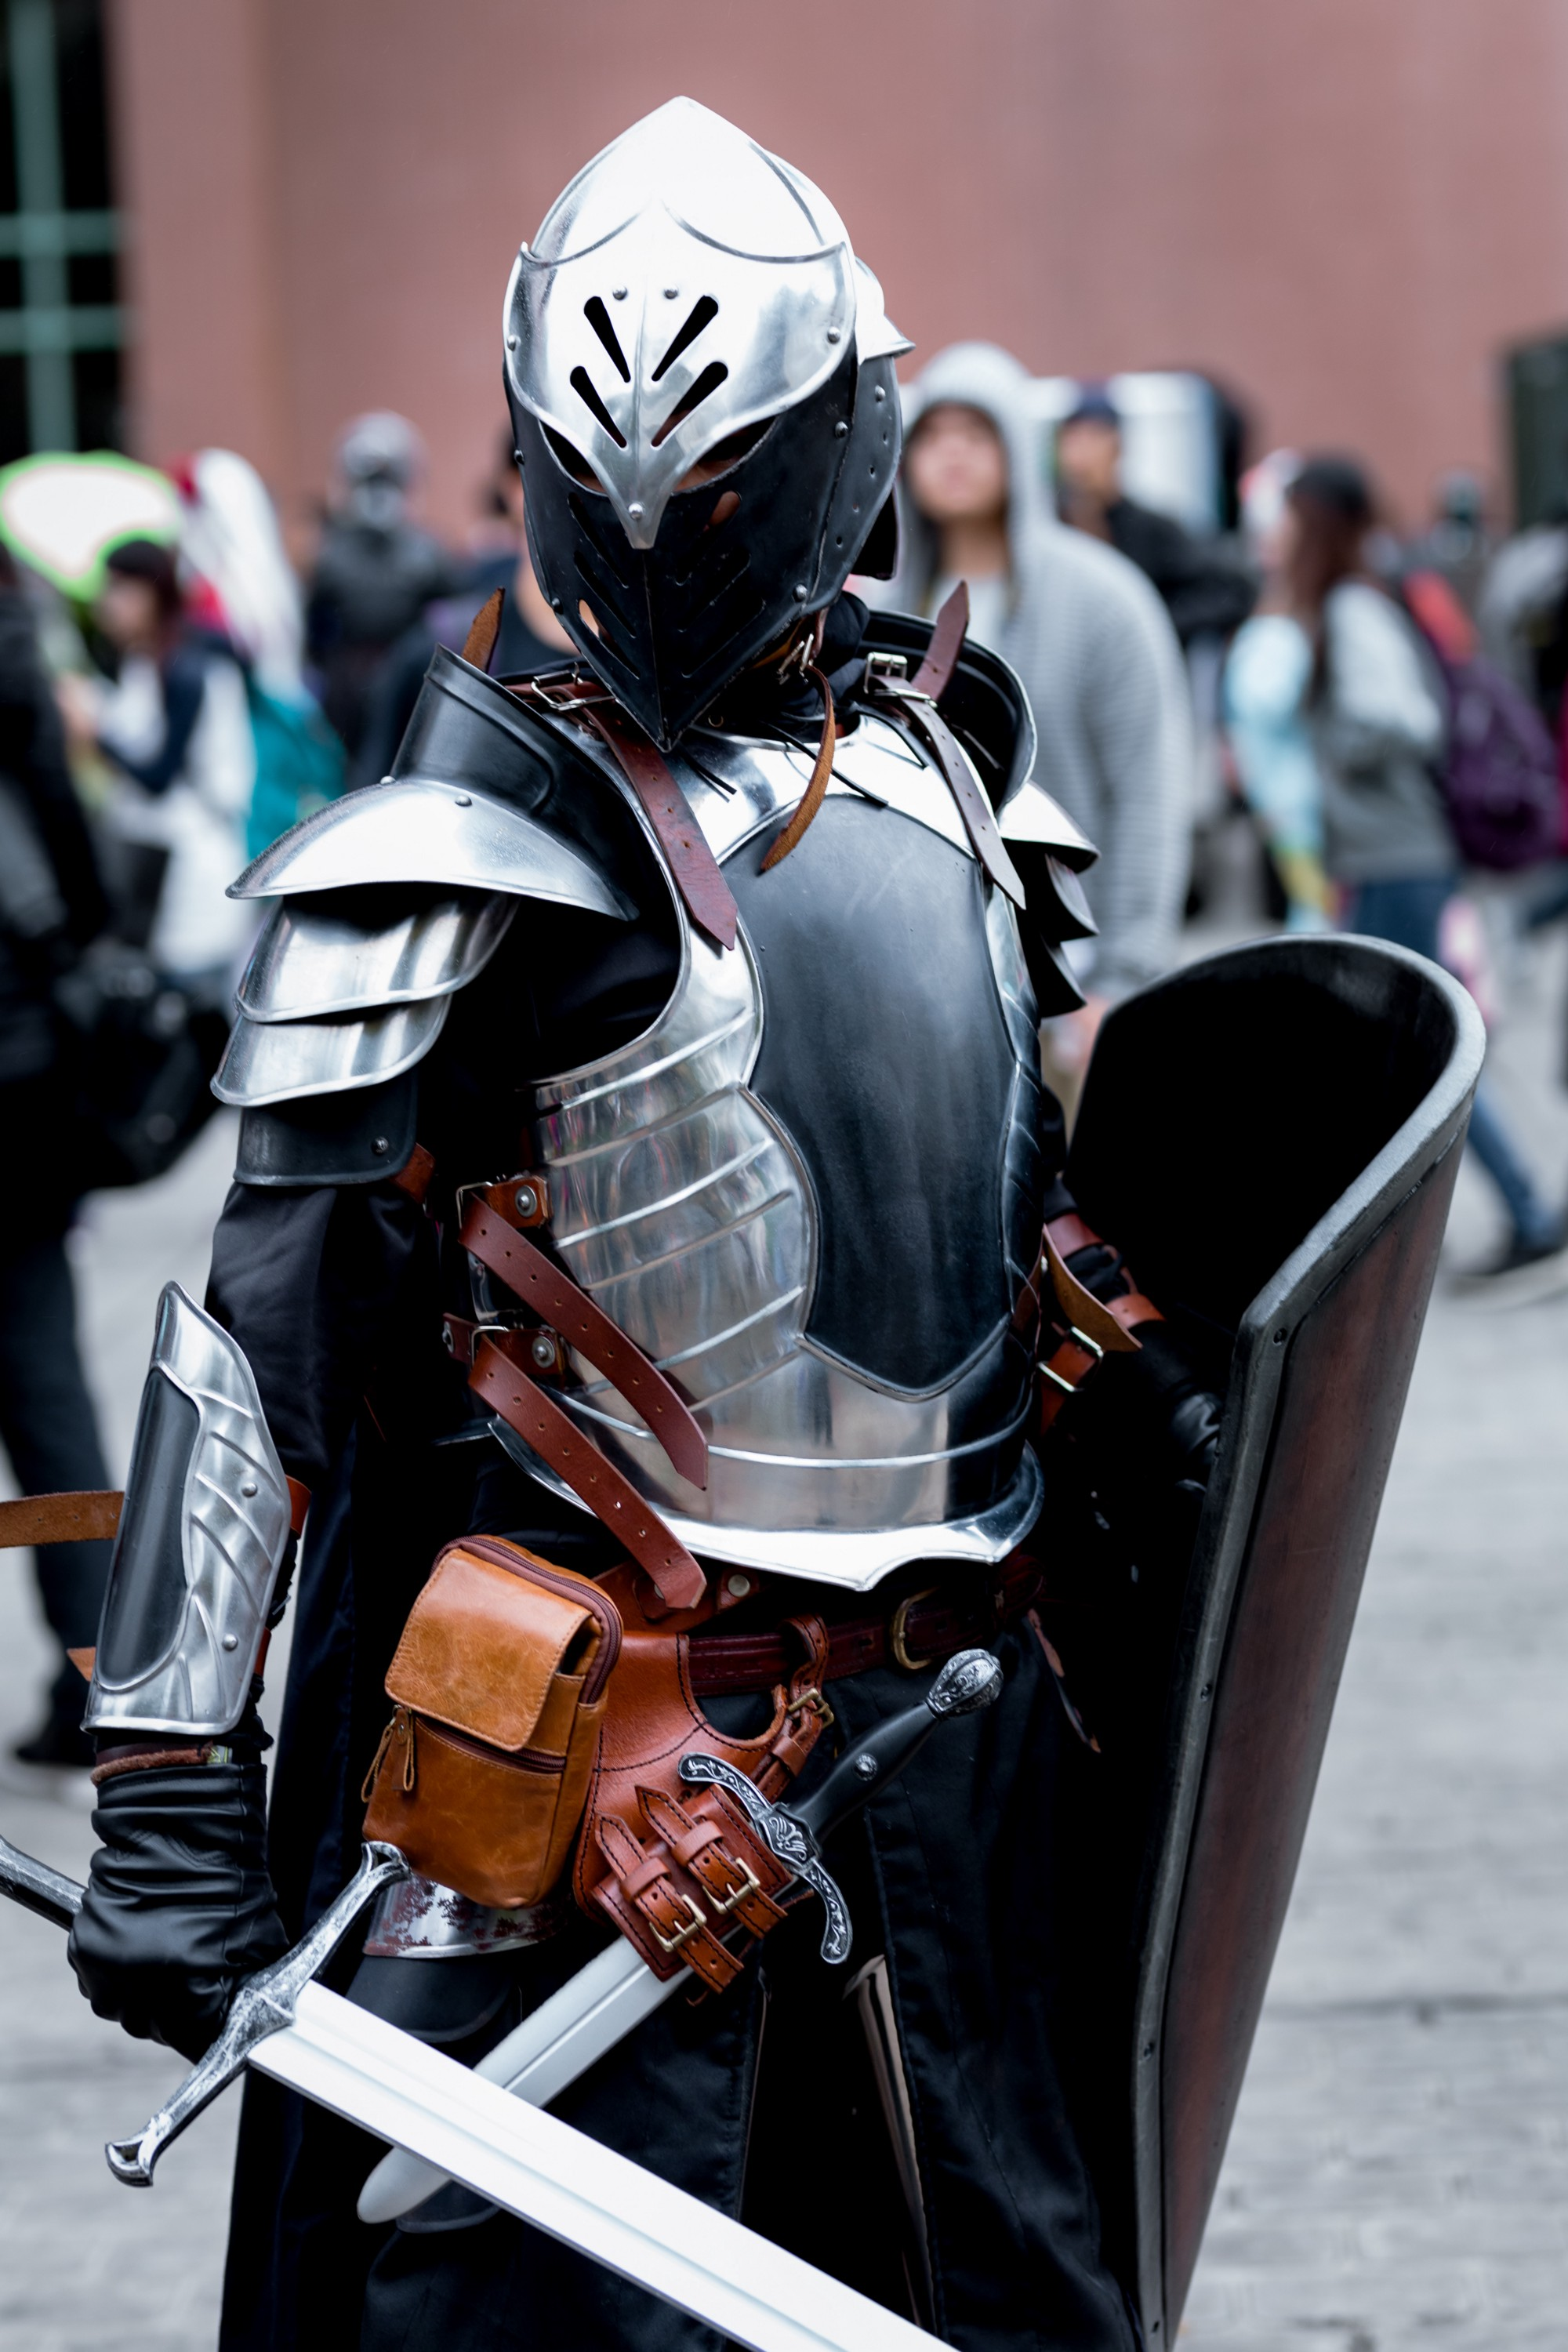 A man standing with armor on and many people behind and beside him.